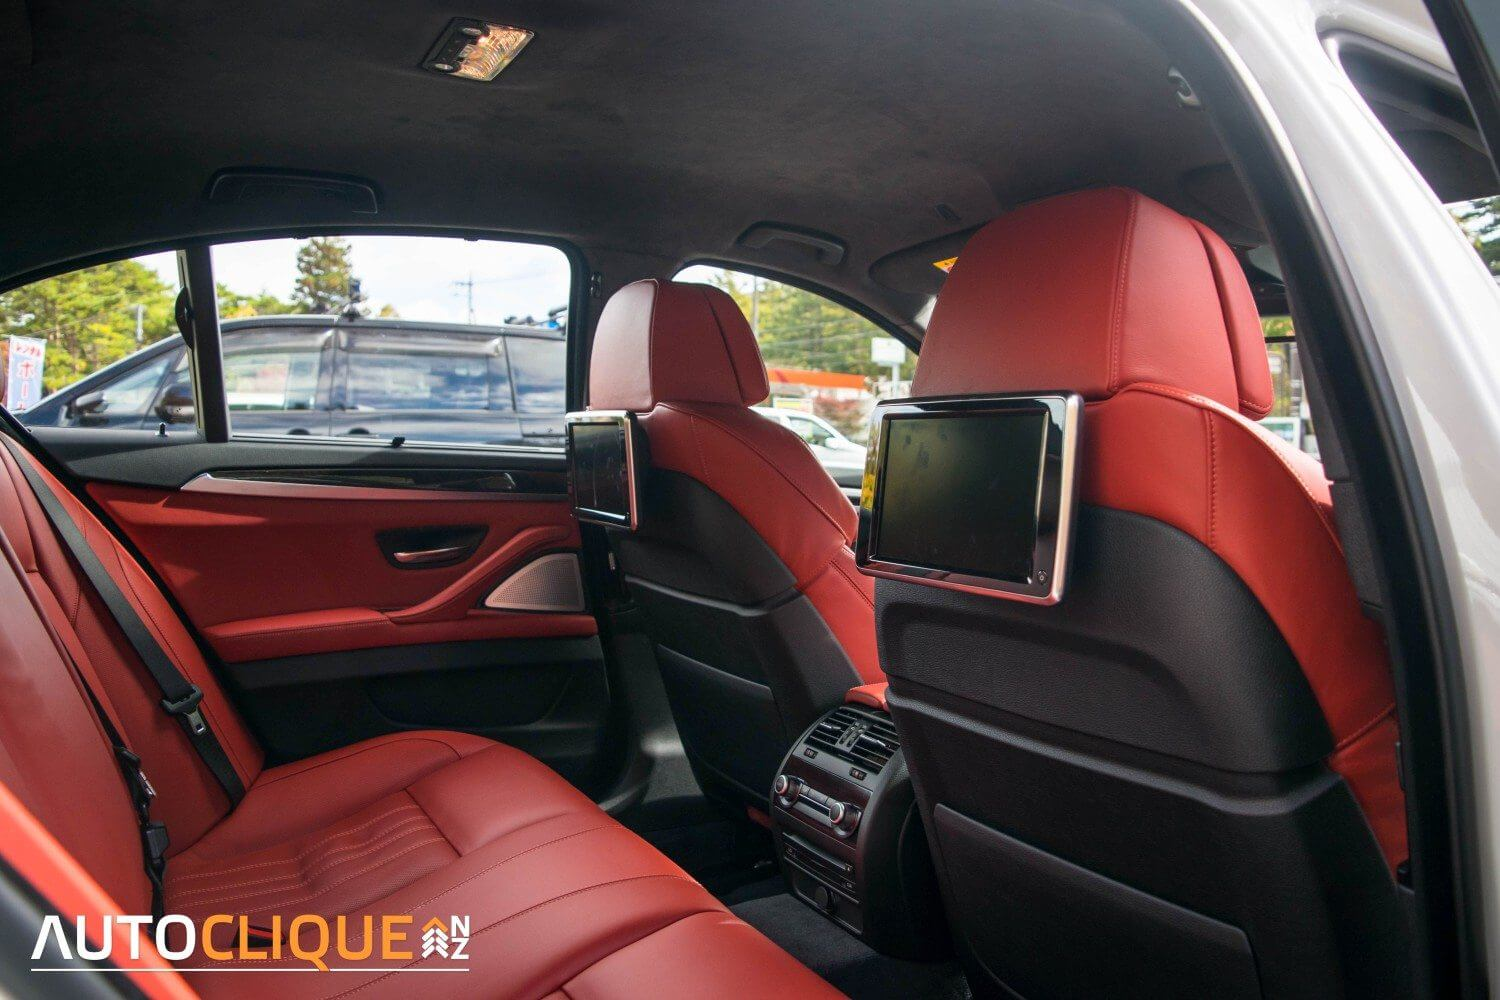 2015 Bmw M5 Car Review M Sanity Drivelife Drivelife